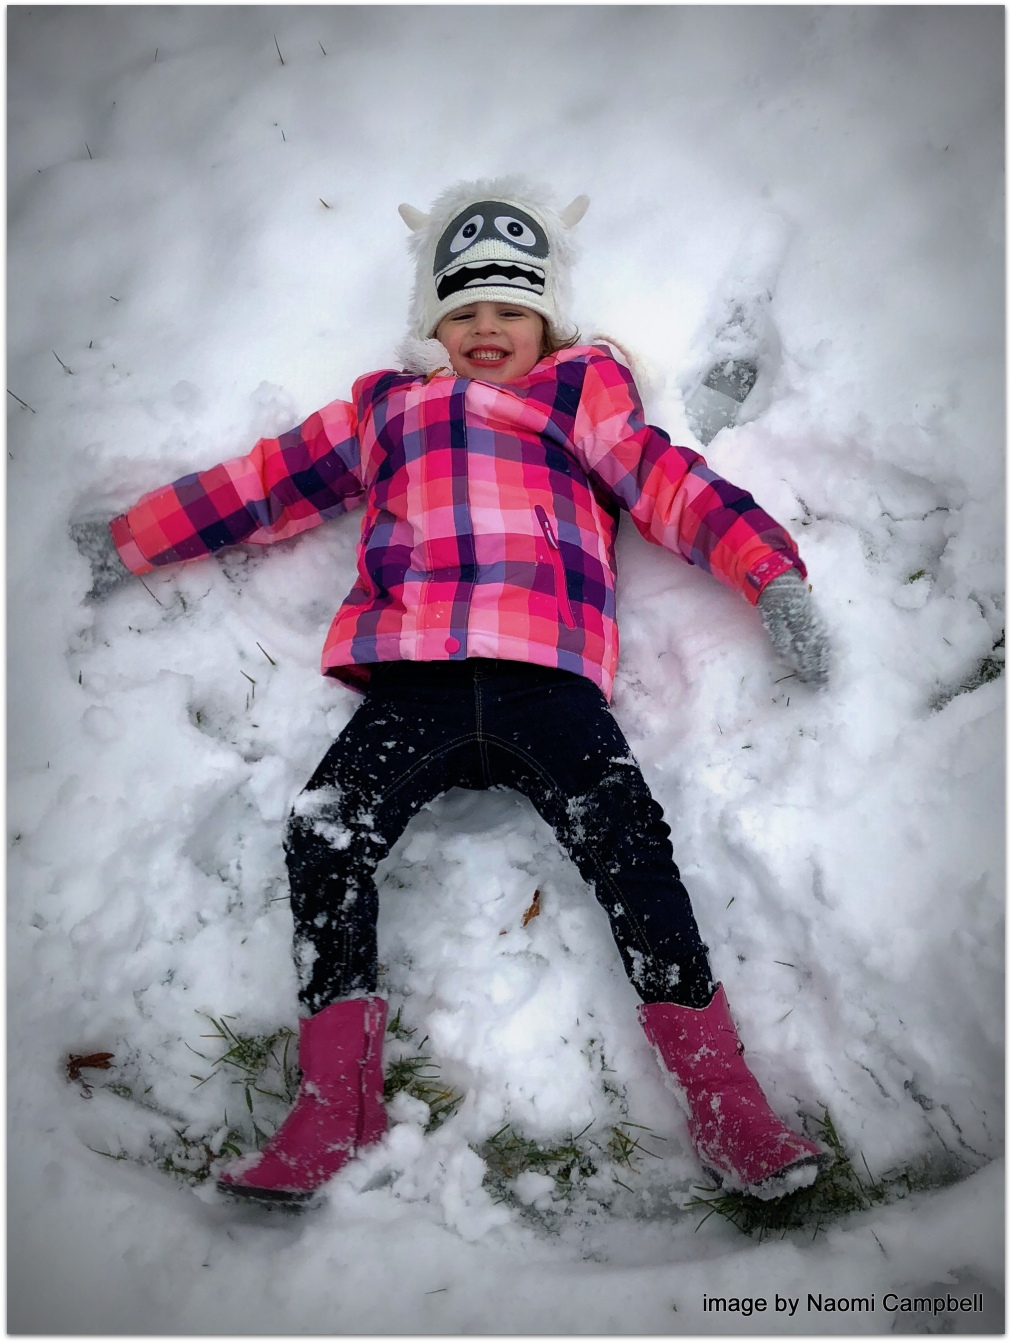 Snow Angels, tough questions, and tidyanswers